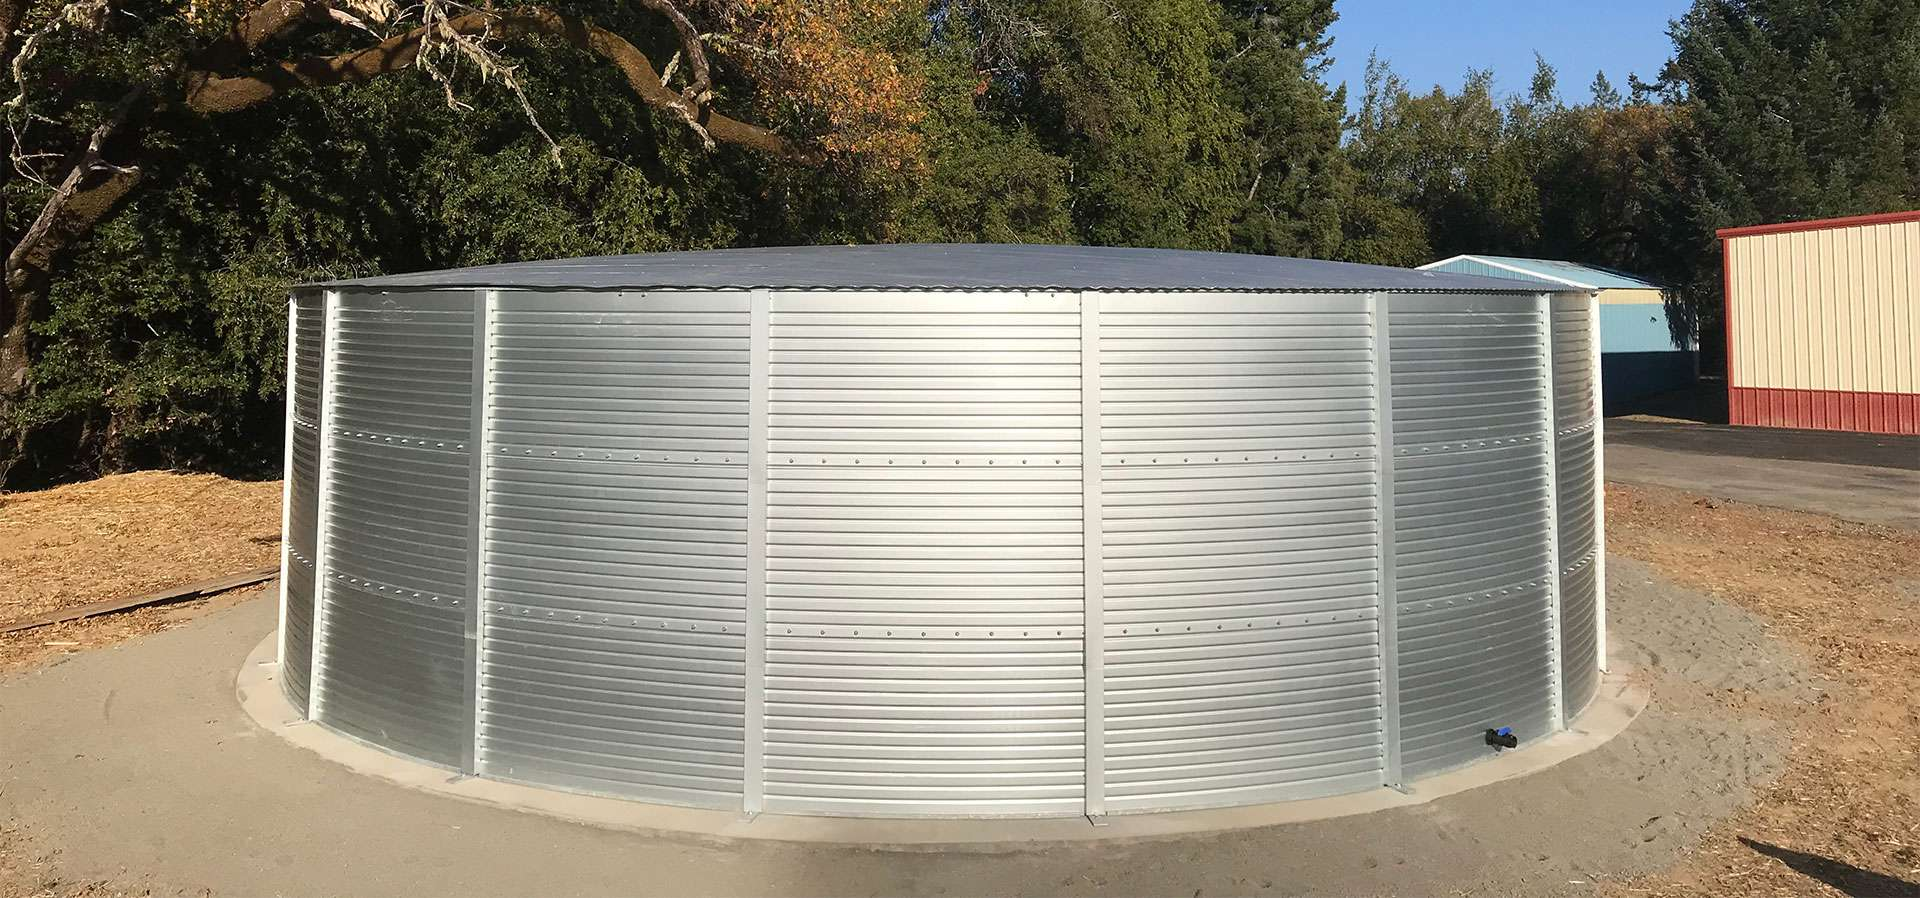 100000 water storage tank systems in Texas